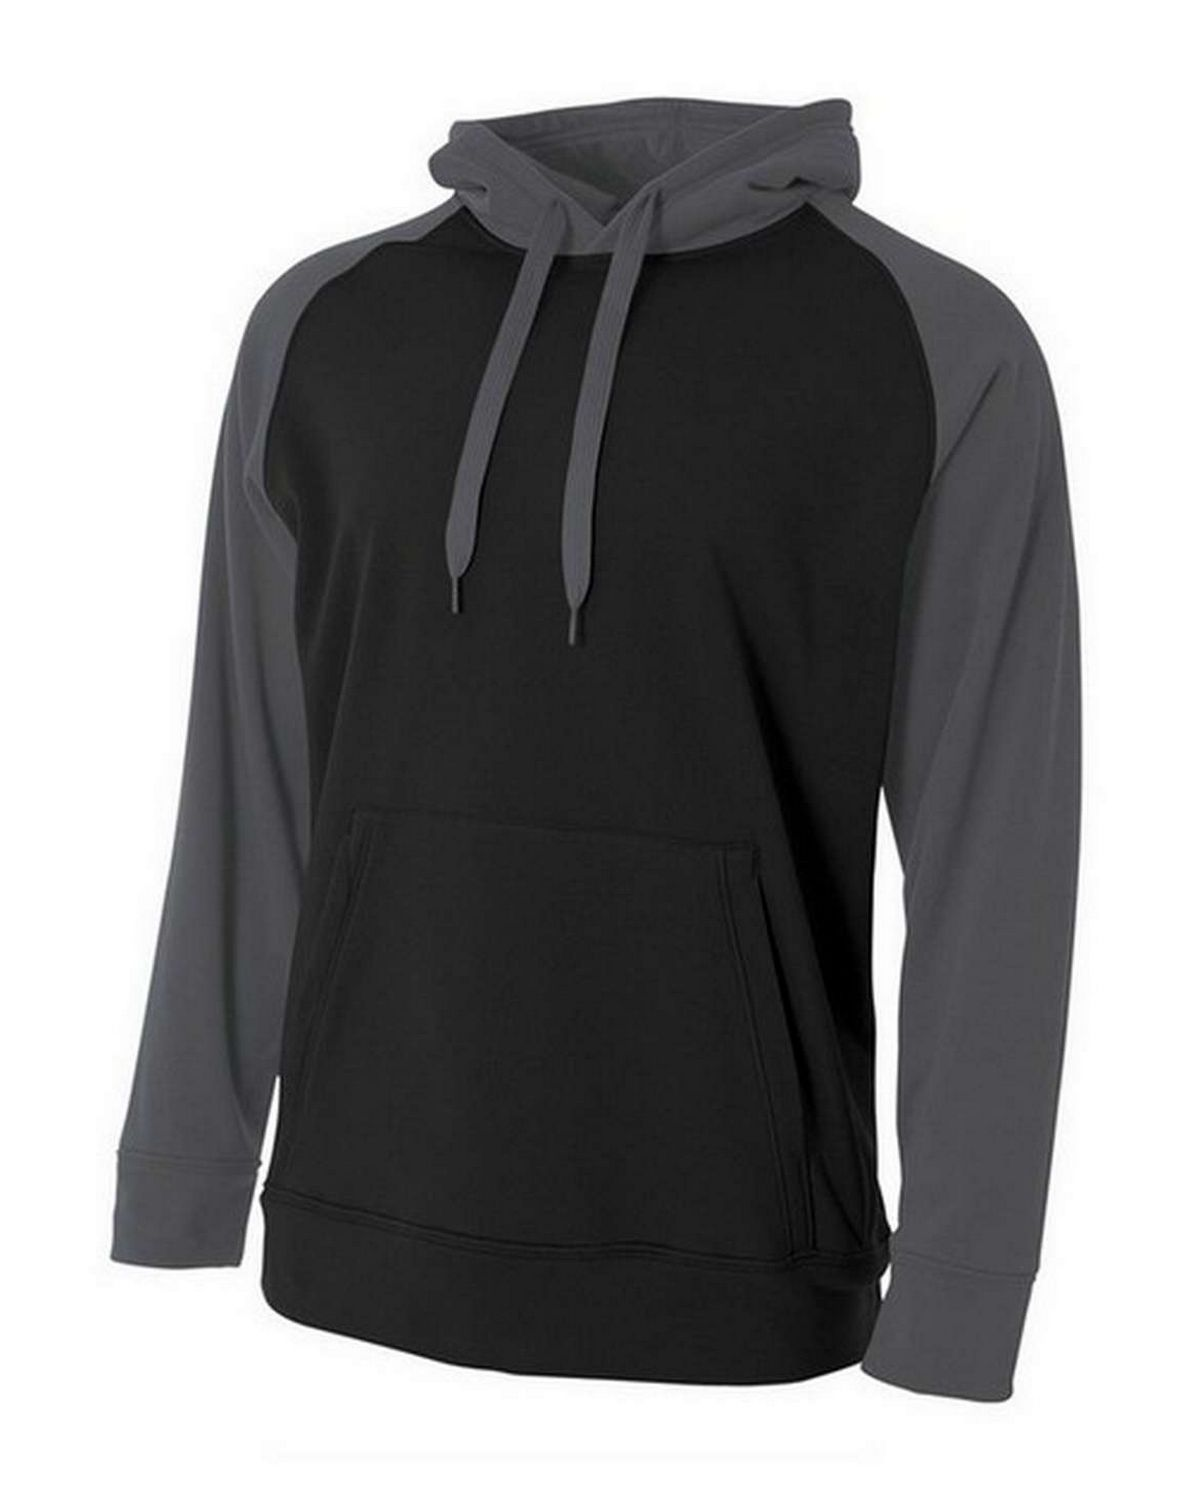 A4 NB4234 Youth Color Block Tech Fleece Hoodie Pullover